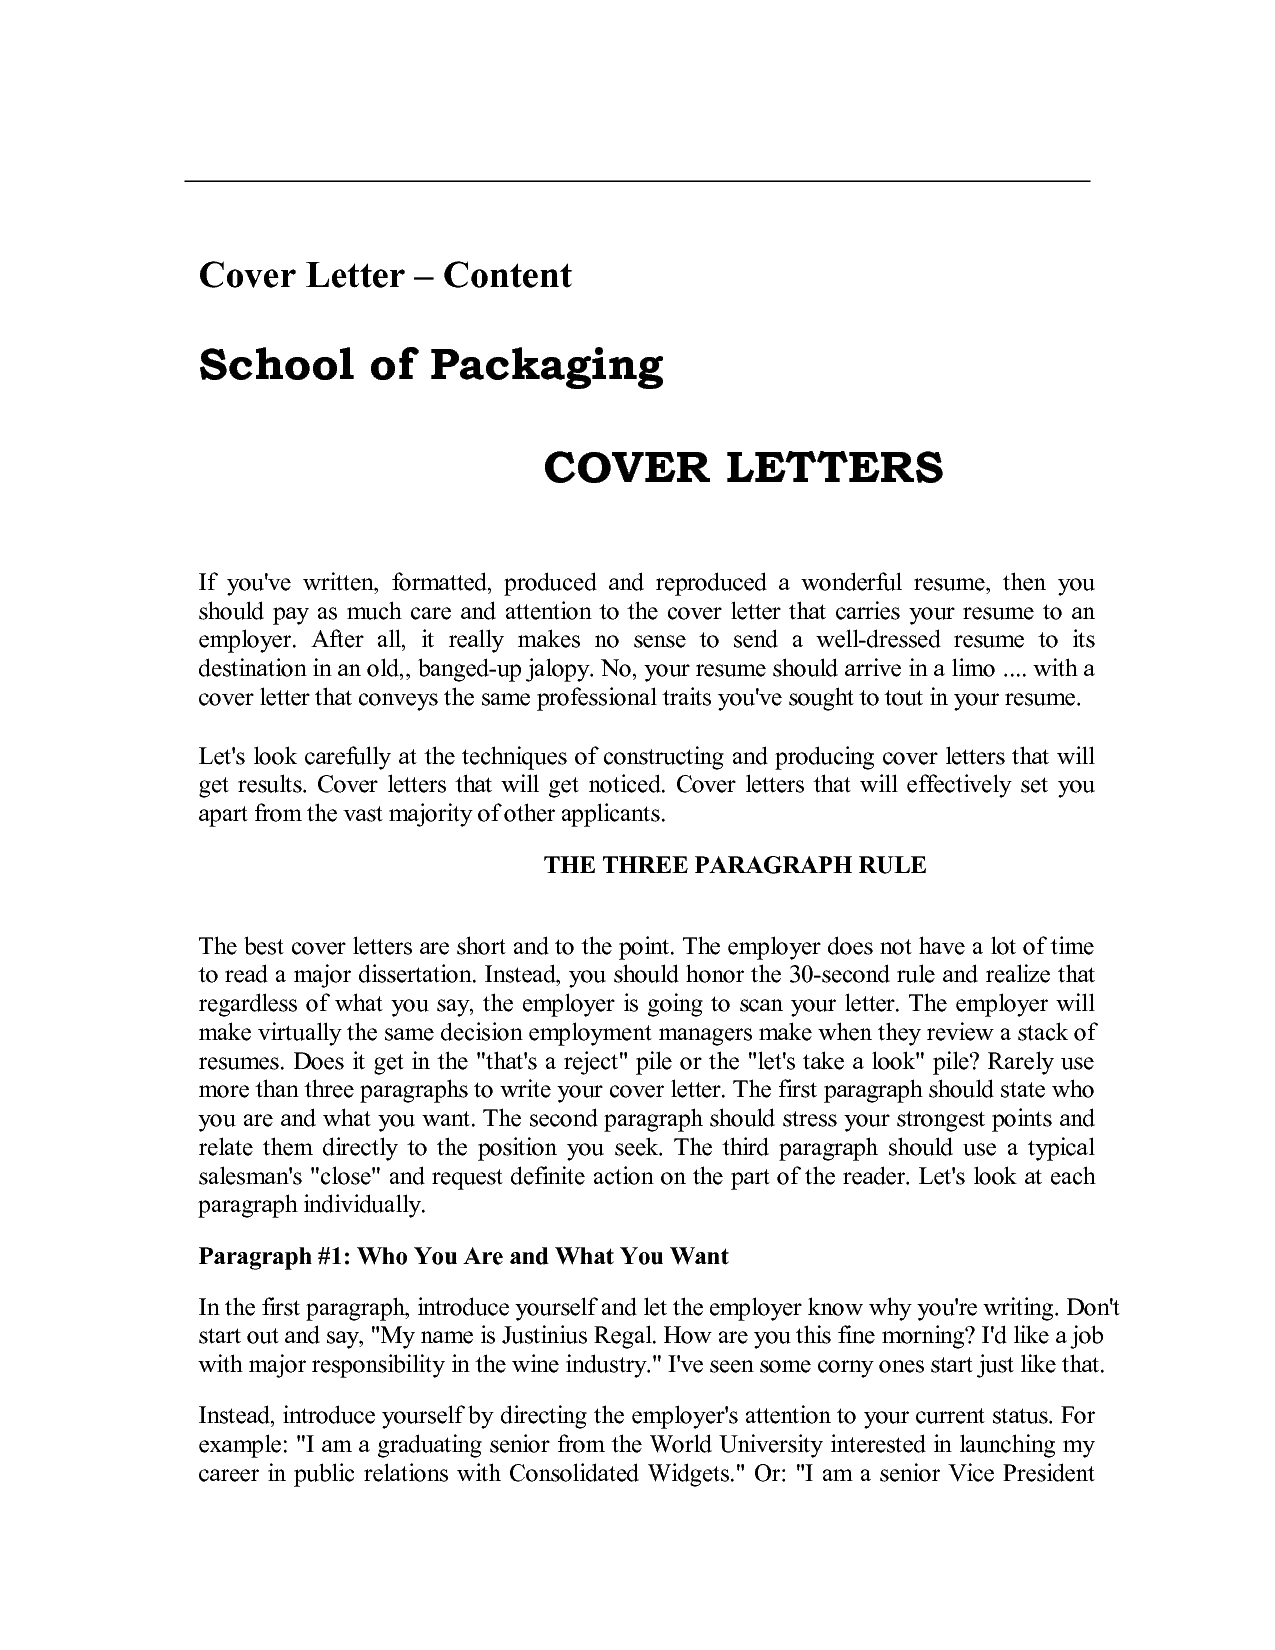 Cover letters pdf with resumecover letter for resume cover letter effective resume writing samples inspiration decoration great cover letter for example the free sheet best free home design idea inspiration madrichimfo Gallery